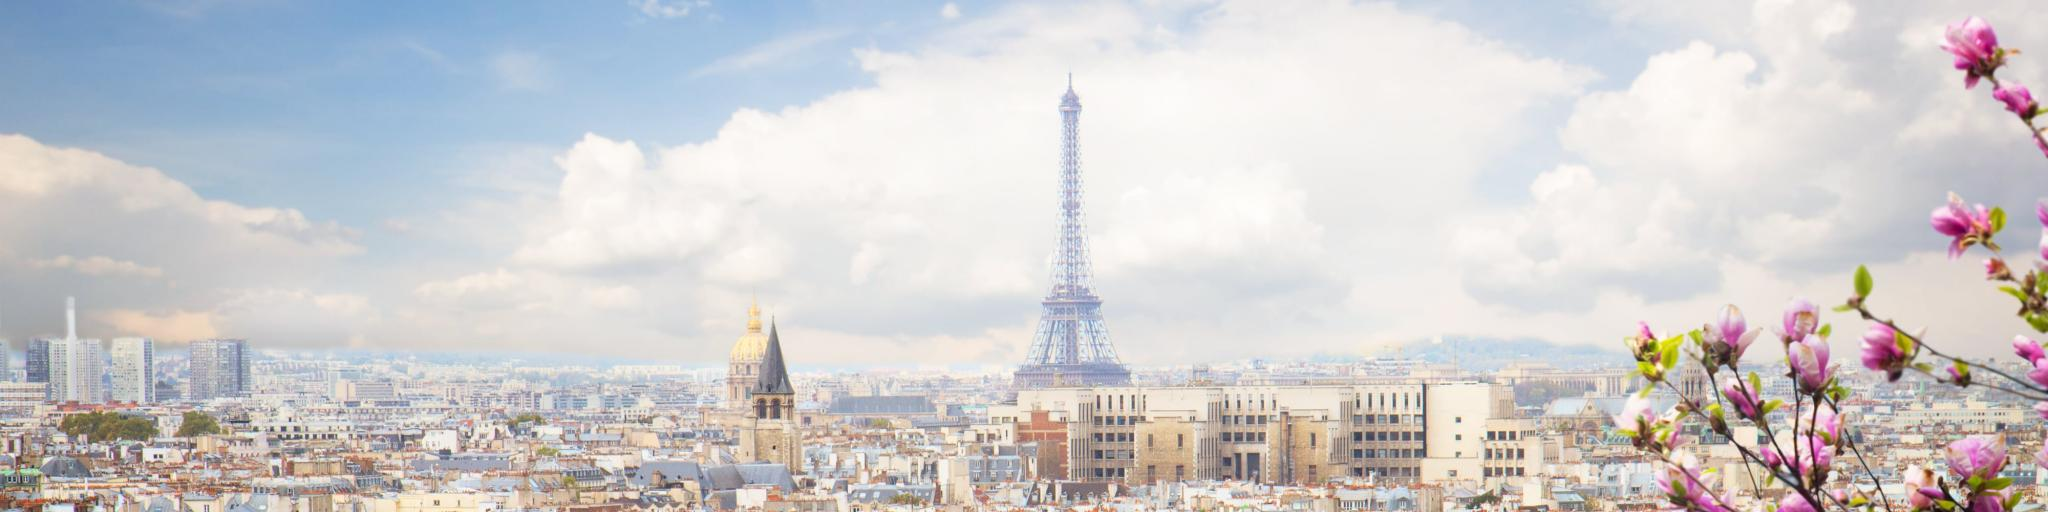 A view of the Paris skyline with the Eiffel Tower visible and cherry blossoms in the foreground